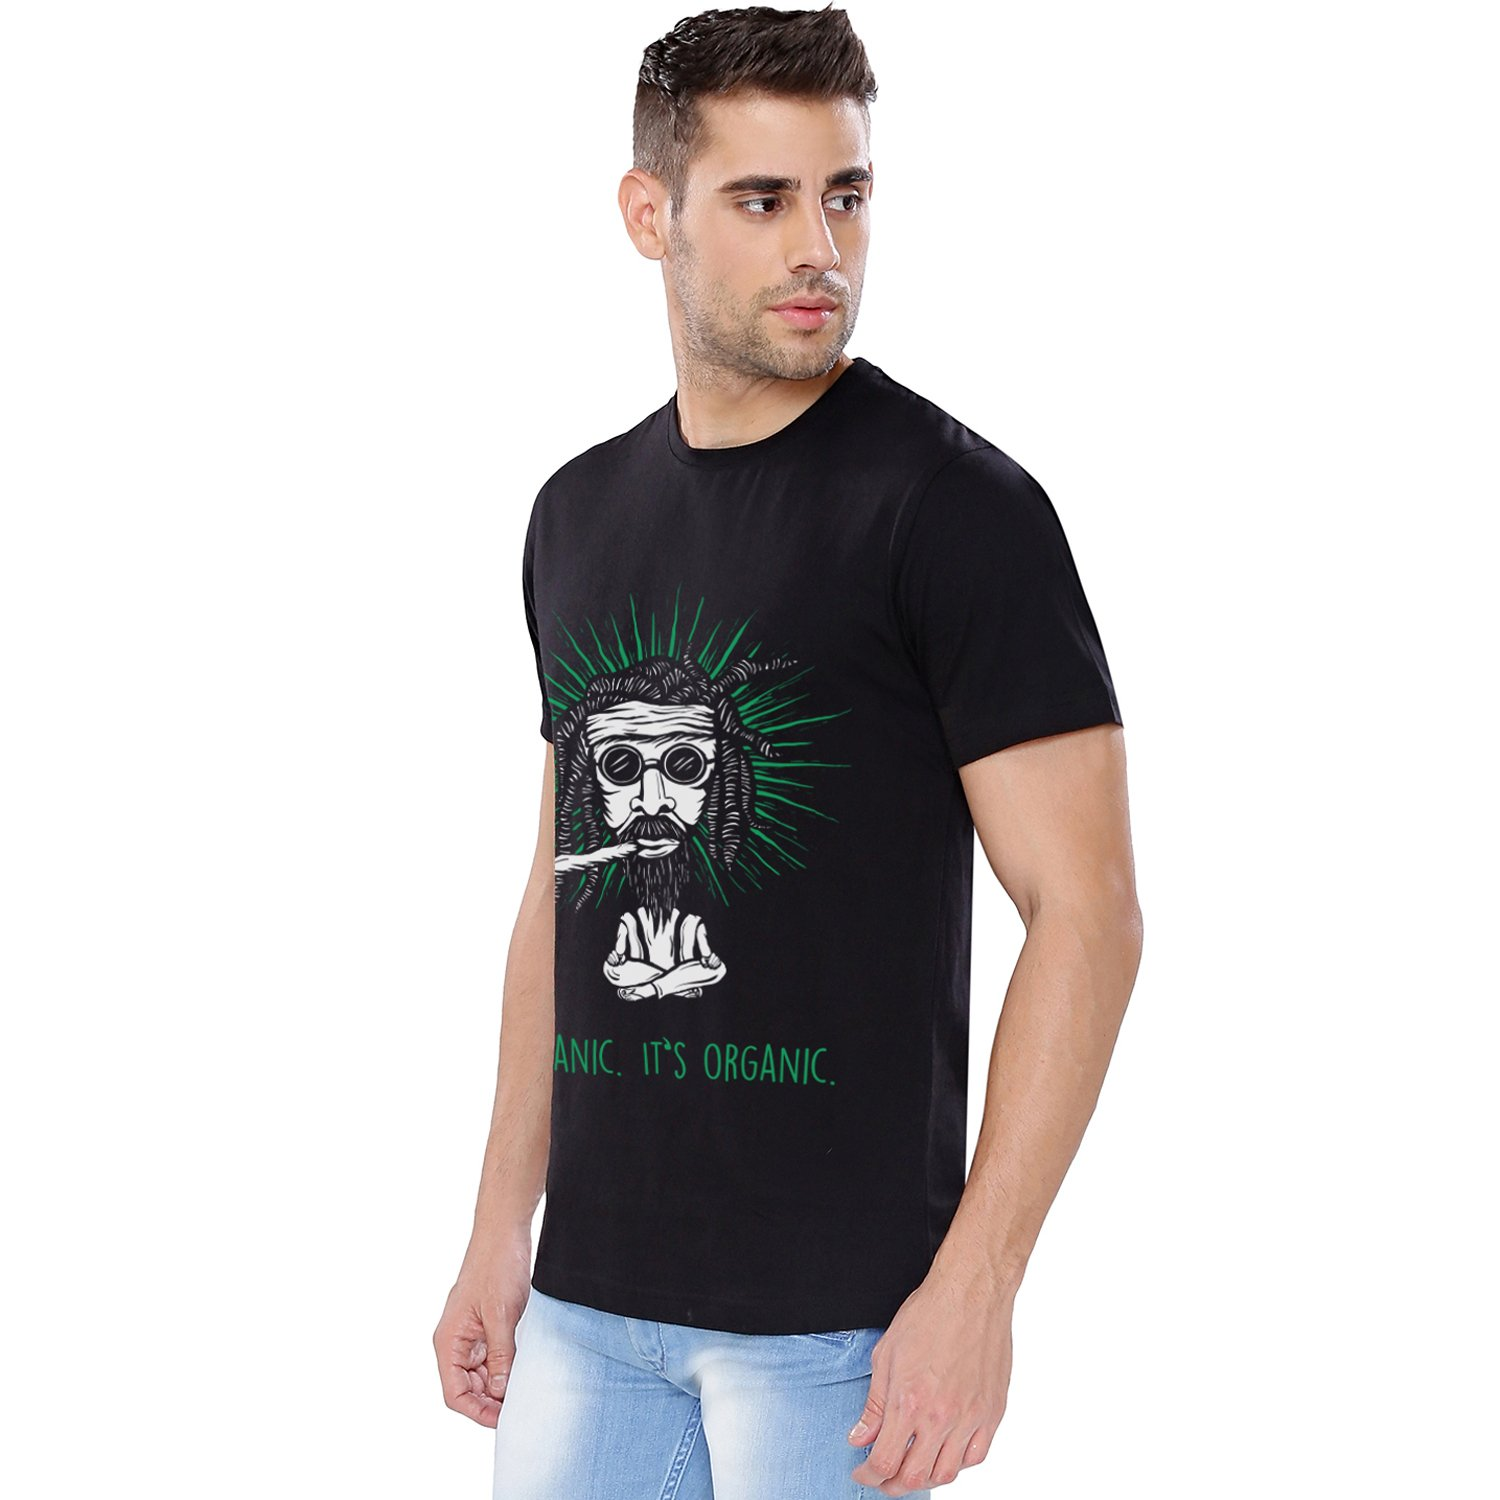 34131fa89b The Souled Store It's Organic (Glow in Dark) Alcohol Printed Black Cotton  T-Shirt for Men Women and Girls: Amazon.in: Clothing & Accessories